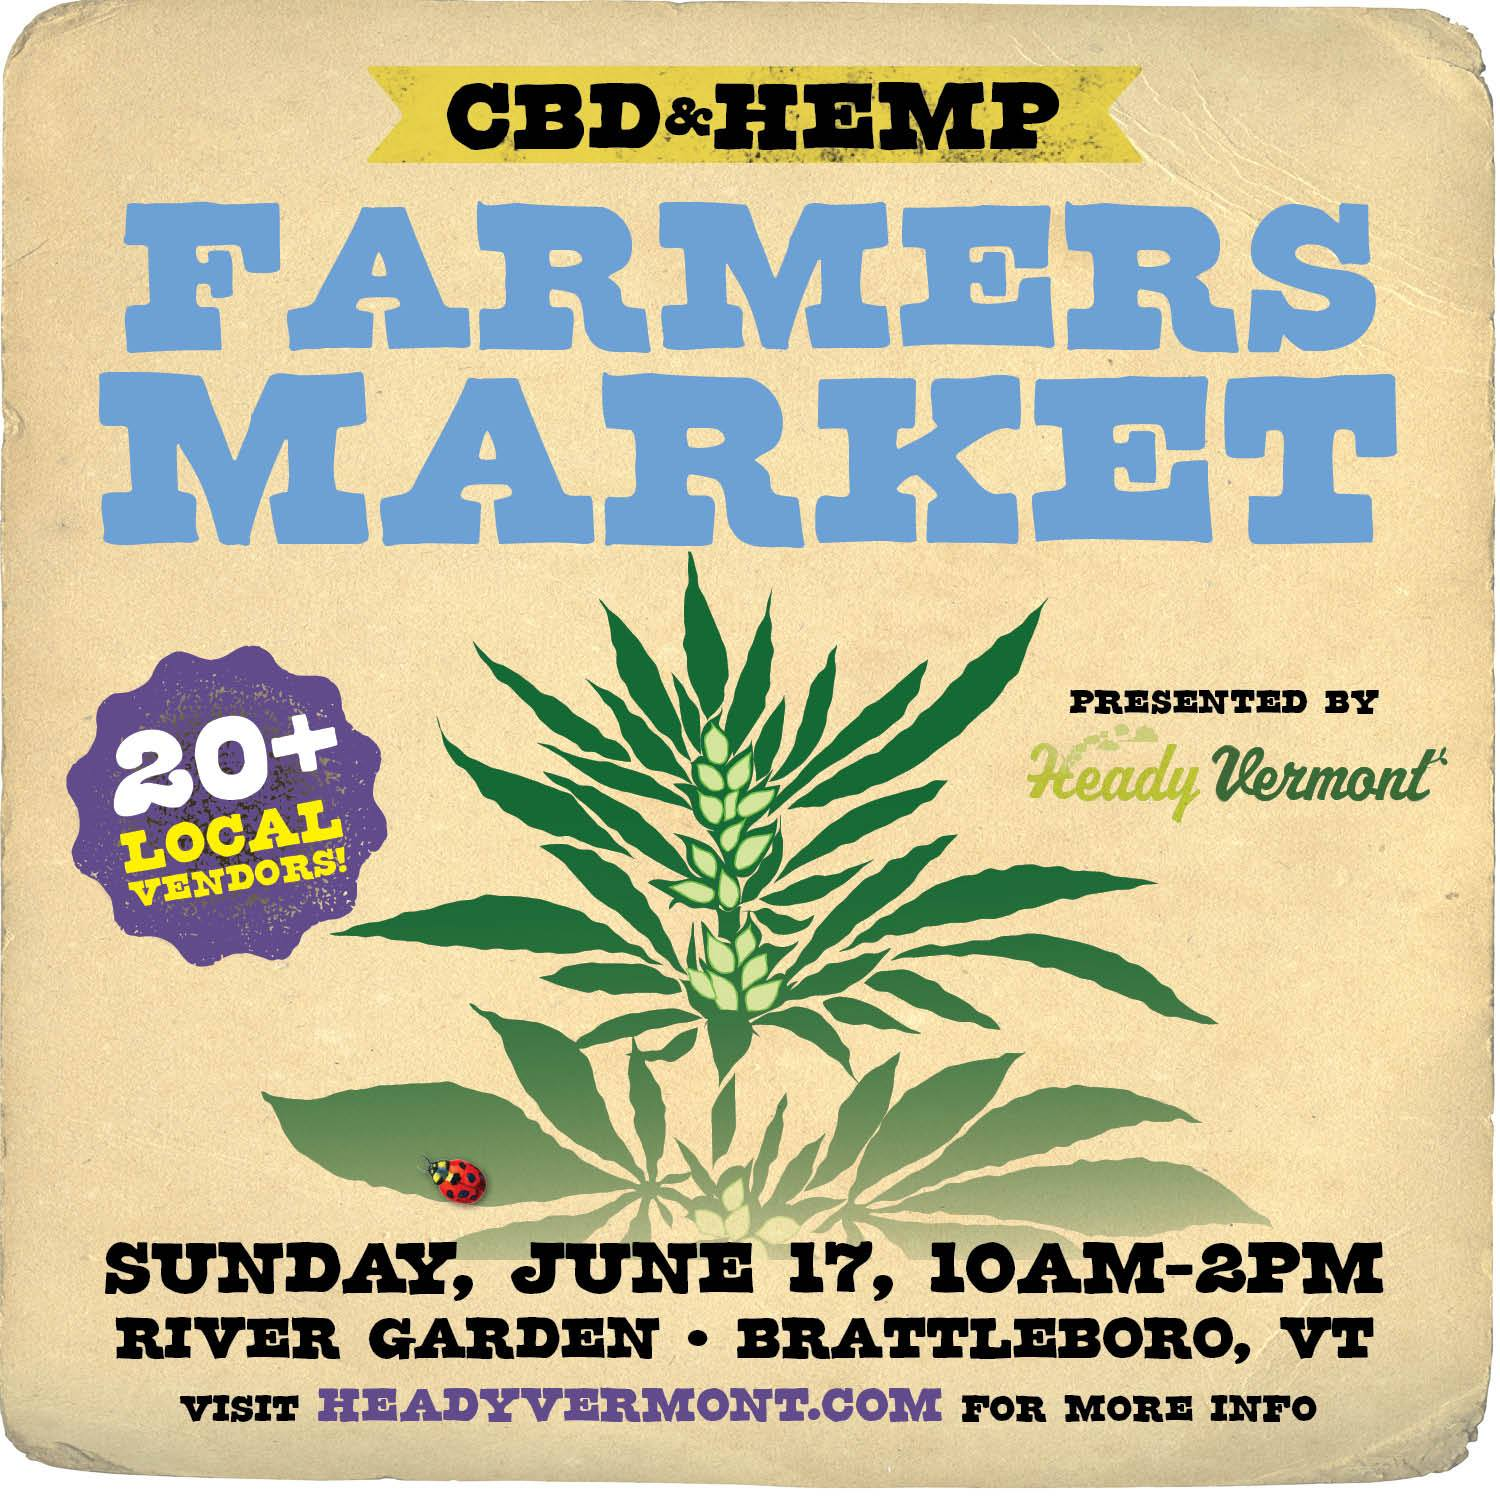 cannabis plant with event information